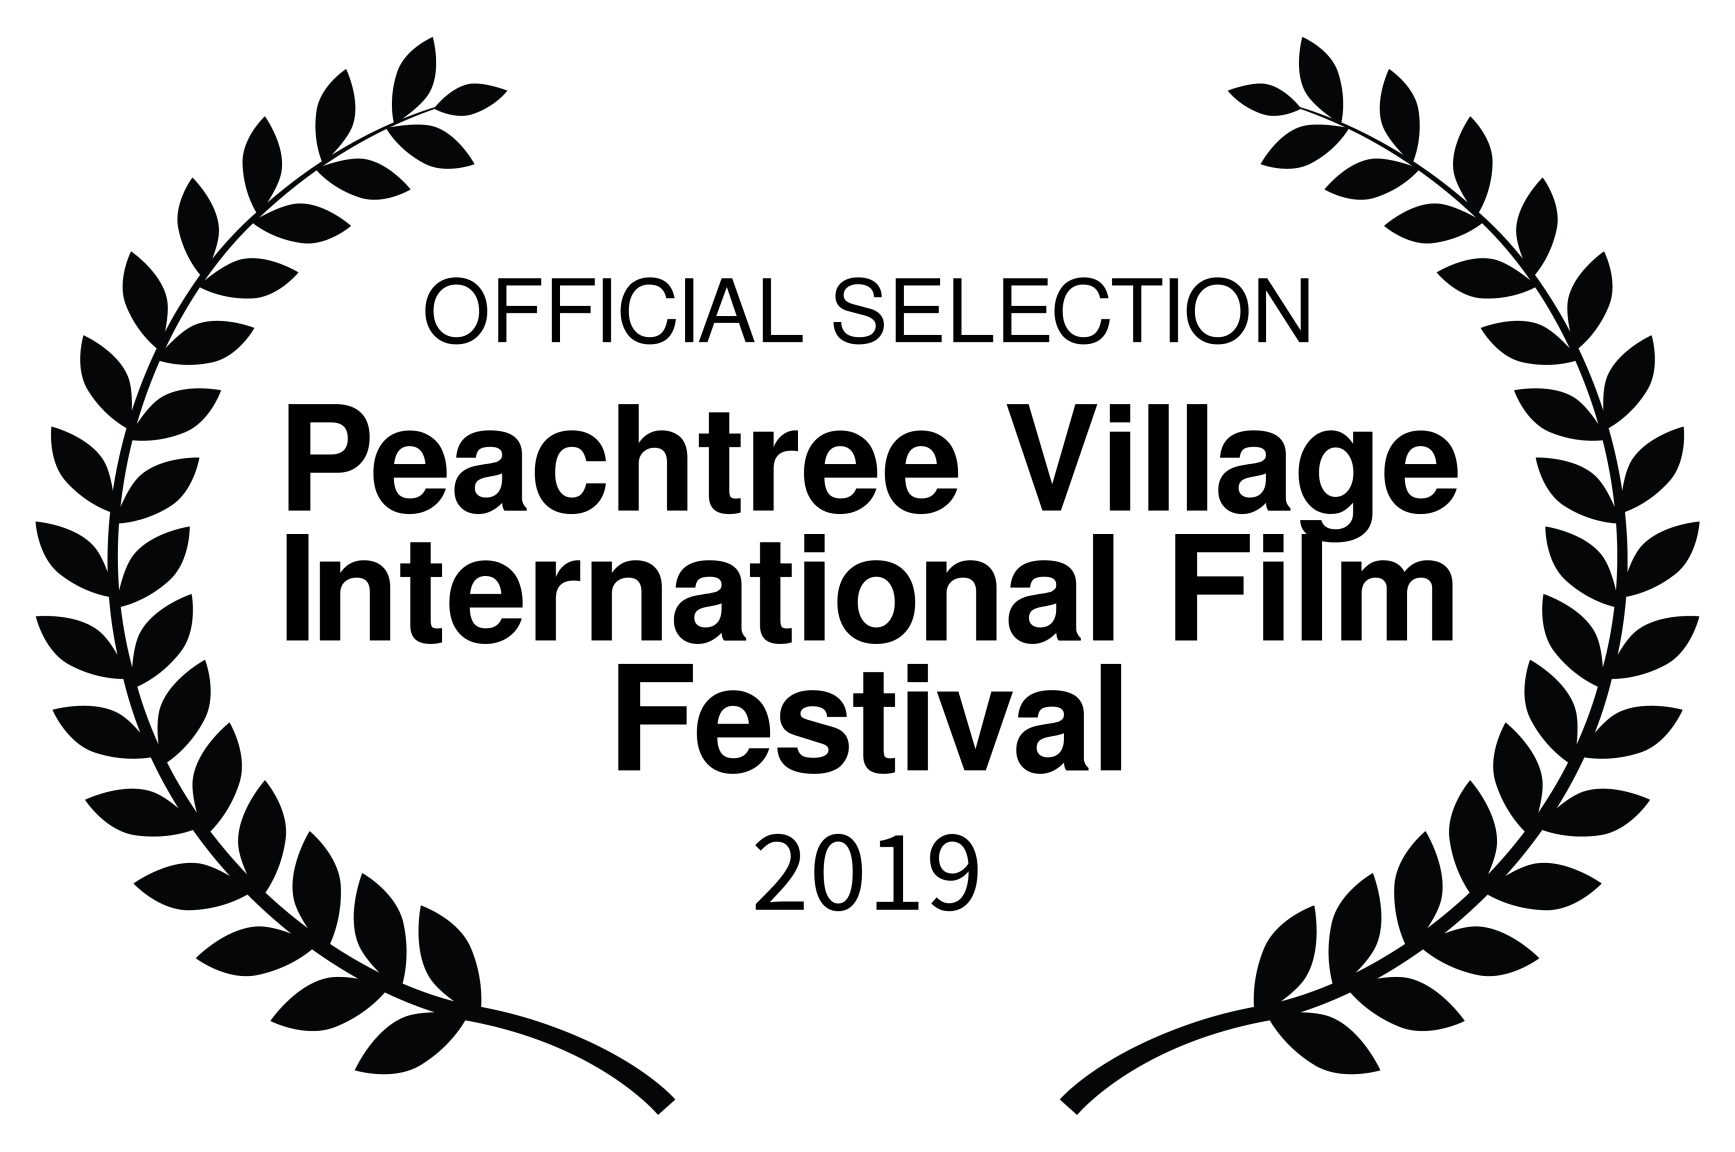 2 OFFICIAL SELECTION - Peachtree Village International Film Festival - 2019 copy.jpg